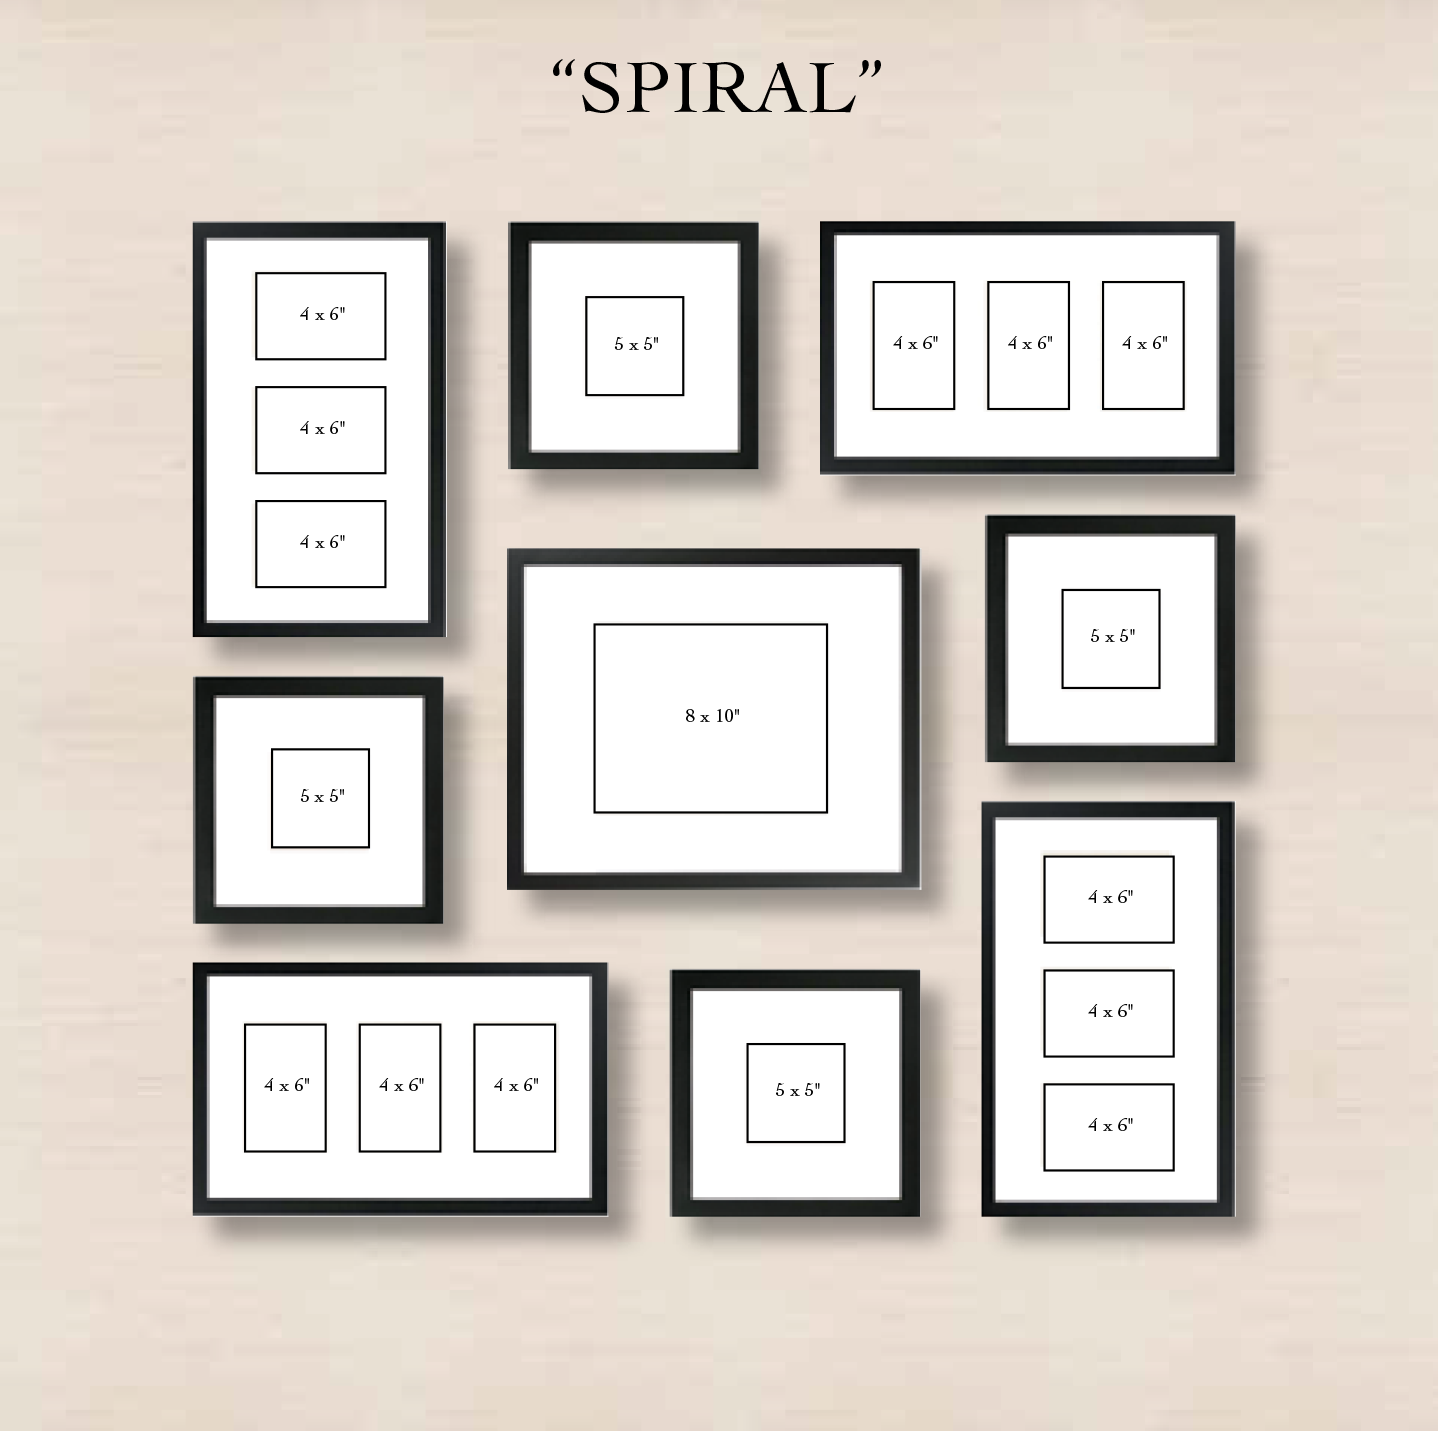 6 Ways to Set Up a Gallery Wall | Pinterest | Gallery wall ...